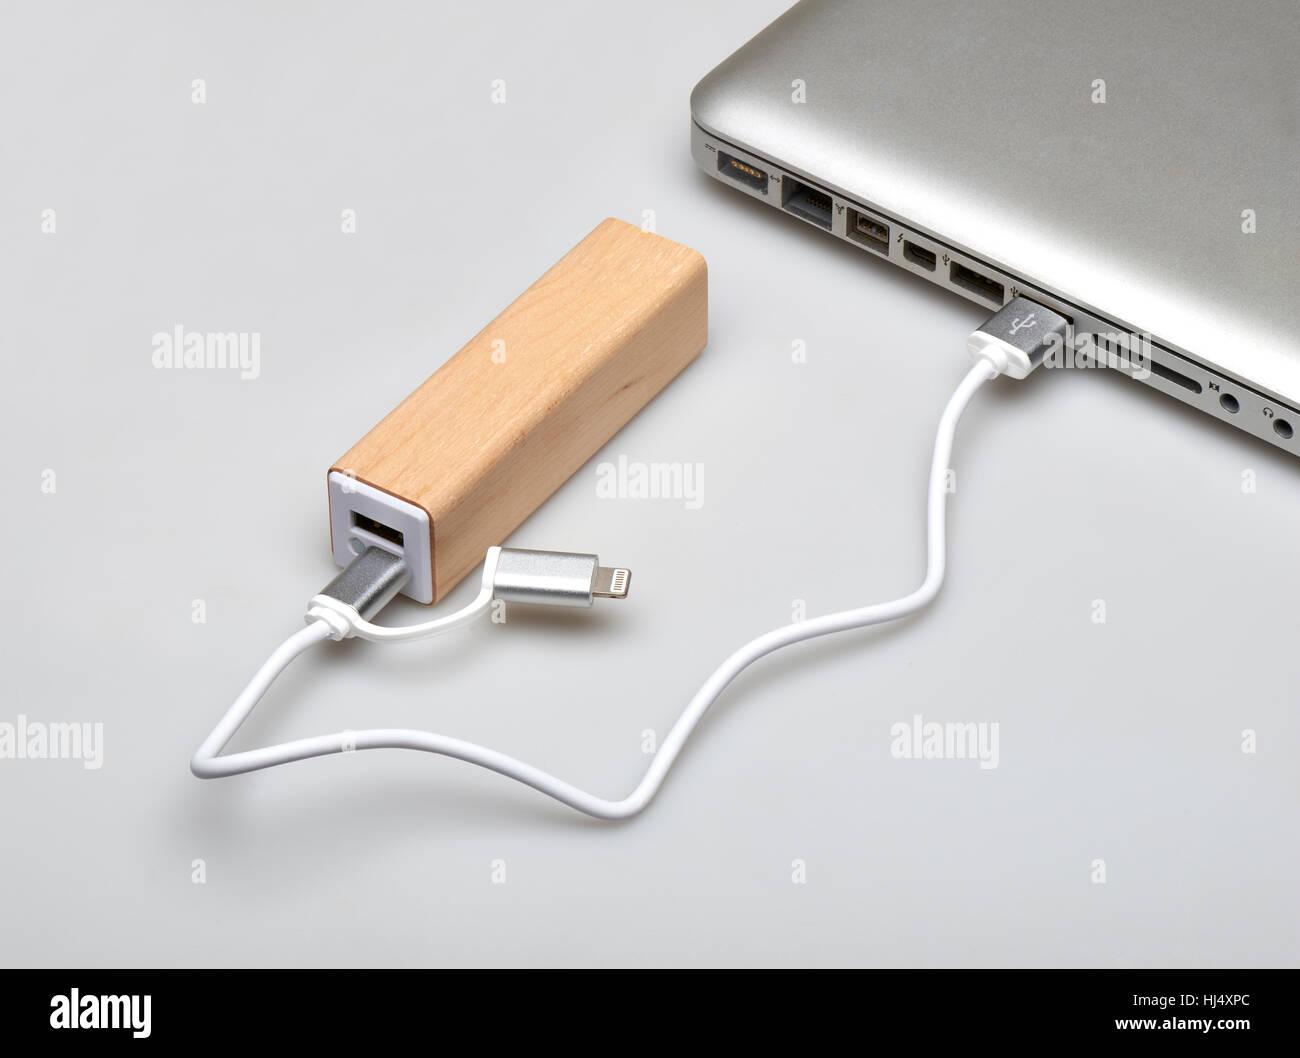 Wooden portable external power bank, for emergency phone recharge isolated on white with clipping path - Stock Image